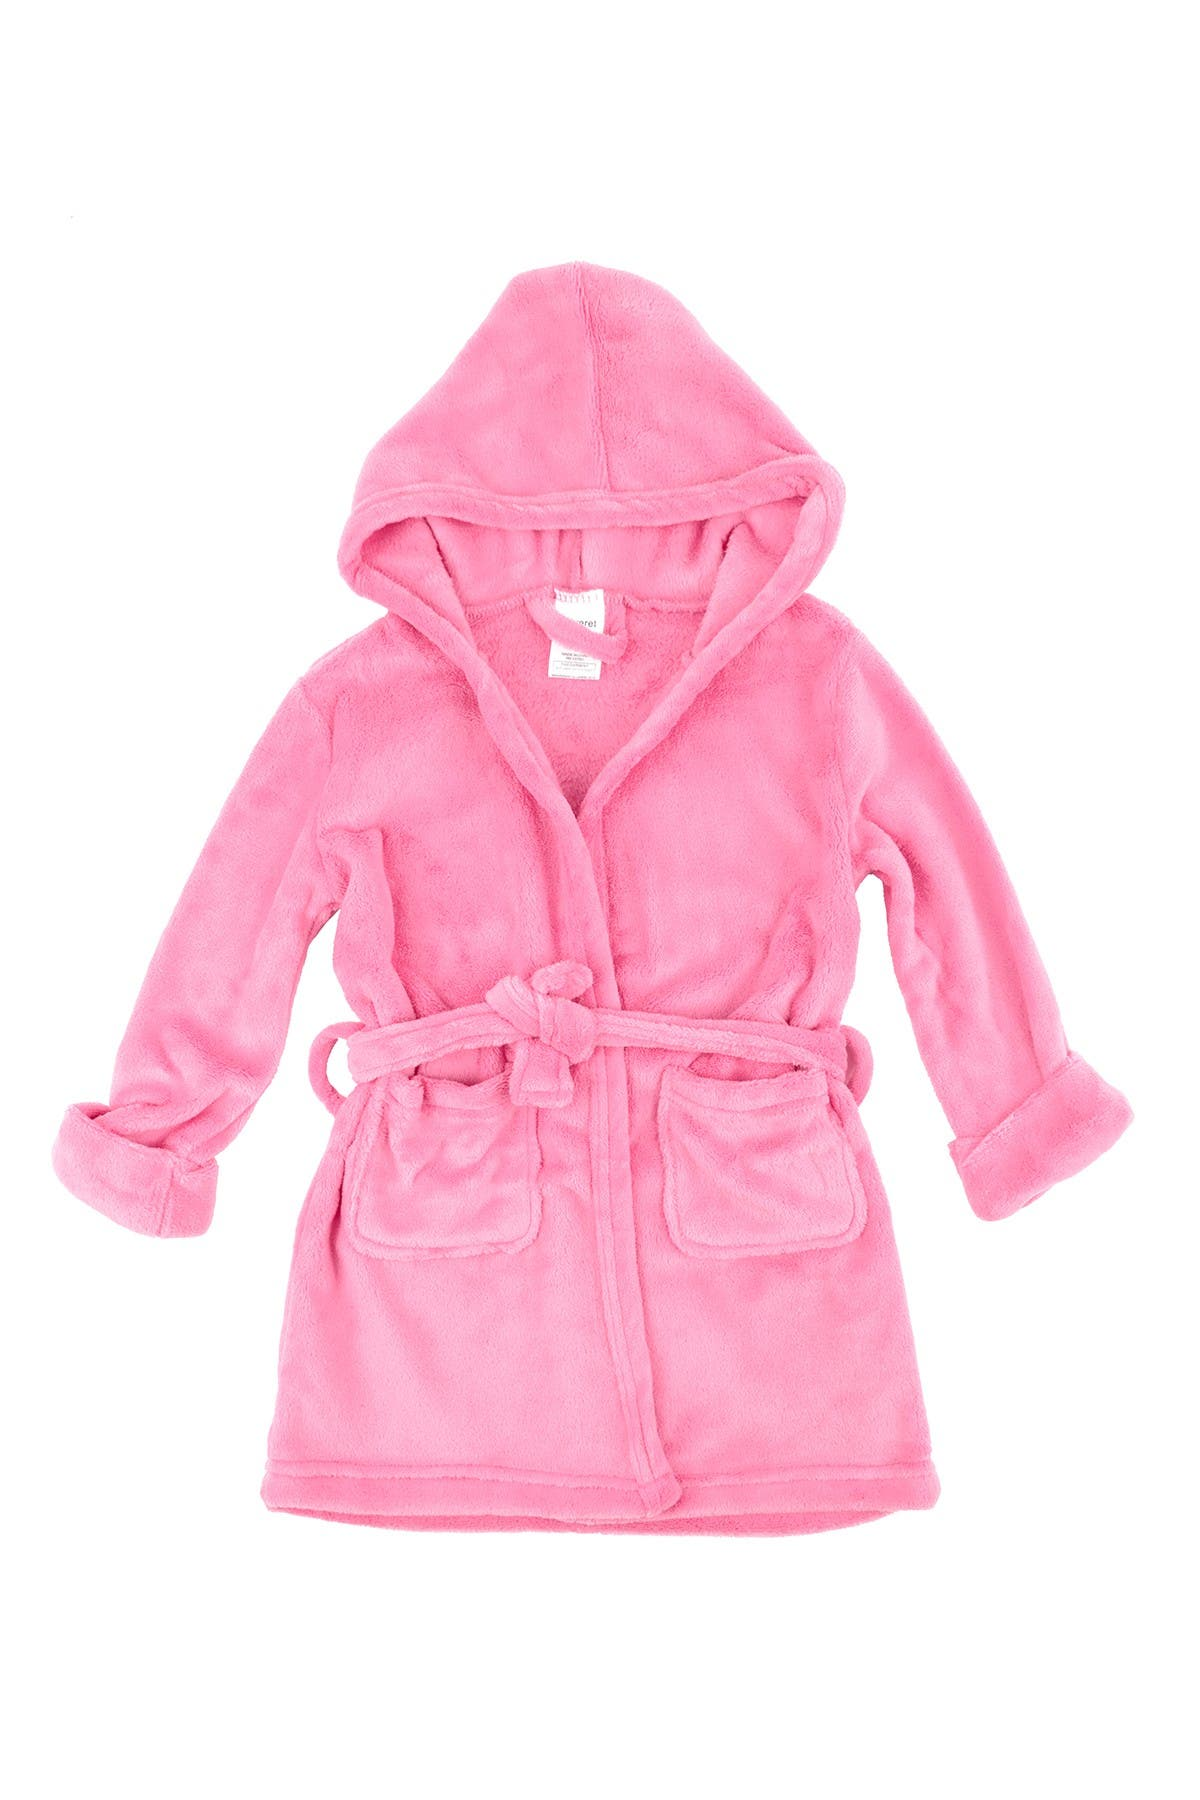 Image of Leveret Light Pink Fleece Hooded Robe